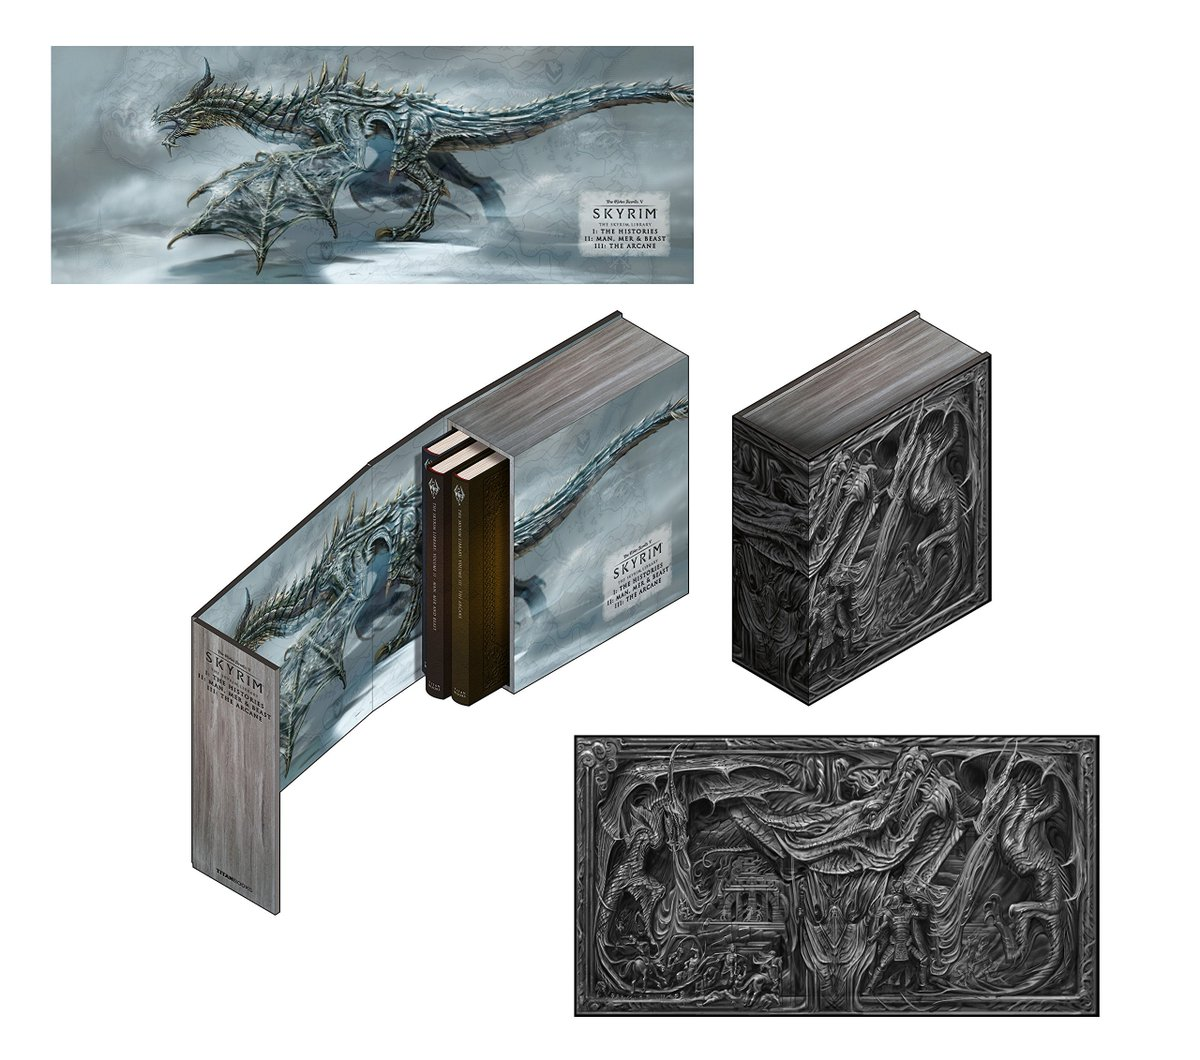 The Skyrim Library Volume 1-3 box set is almost half off on Amazon right now. A box set with 3 books collecting the in-game writings from Skyrim: amzn.to/2Vcg3Np